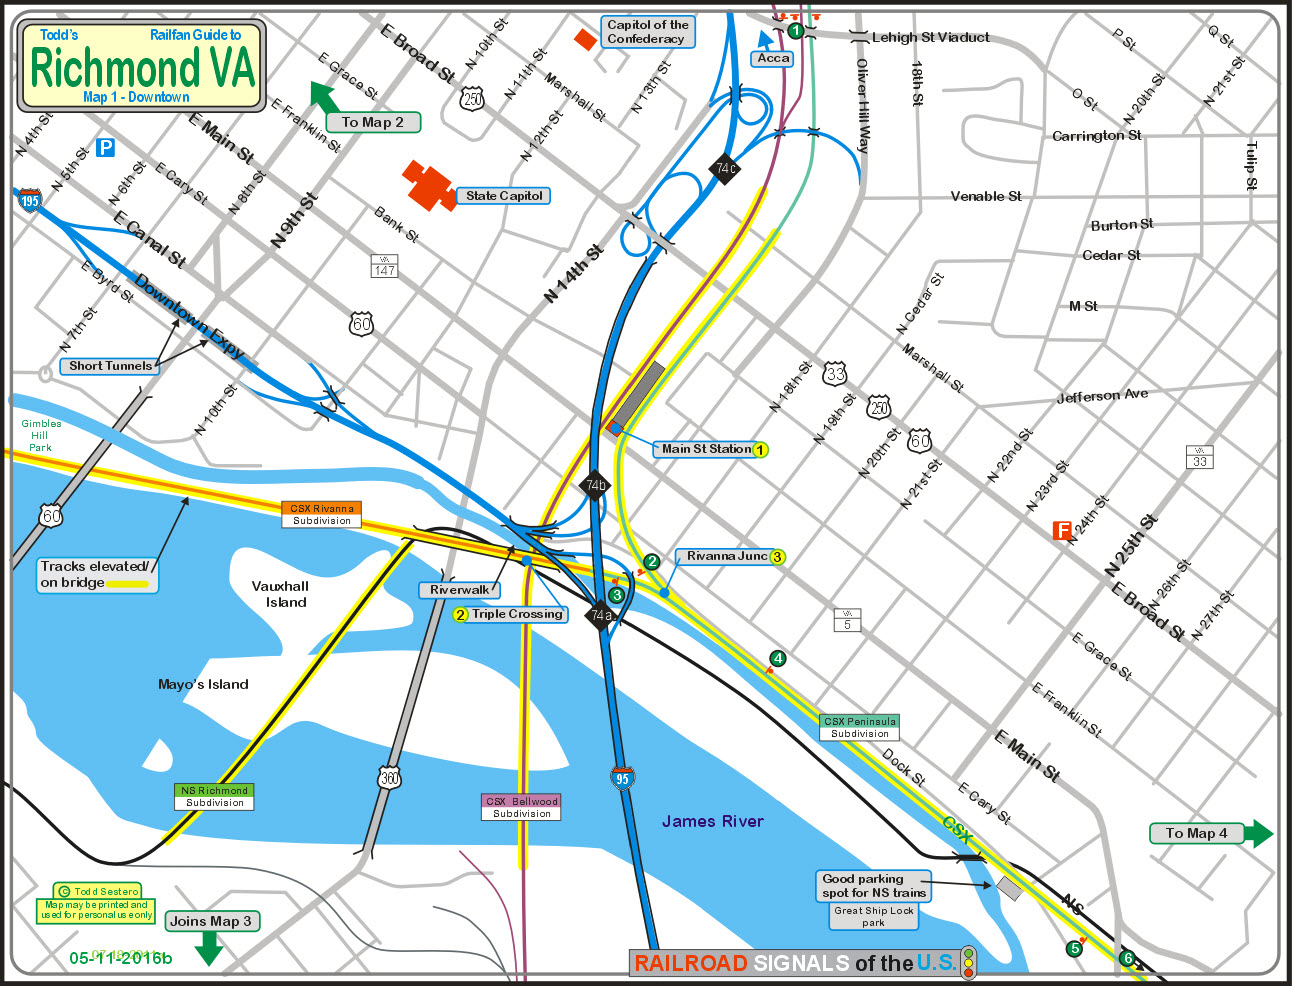 railfan guide to richmond va  downtown - for the map in pdf form click here